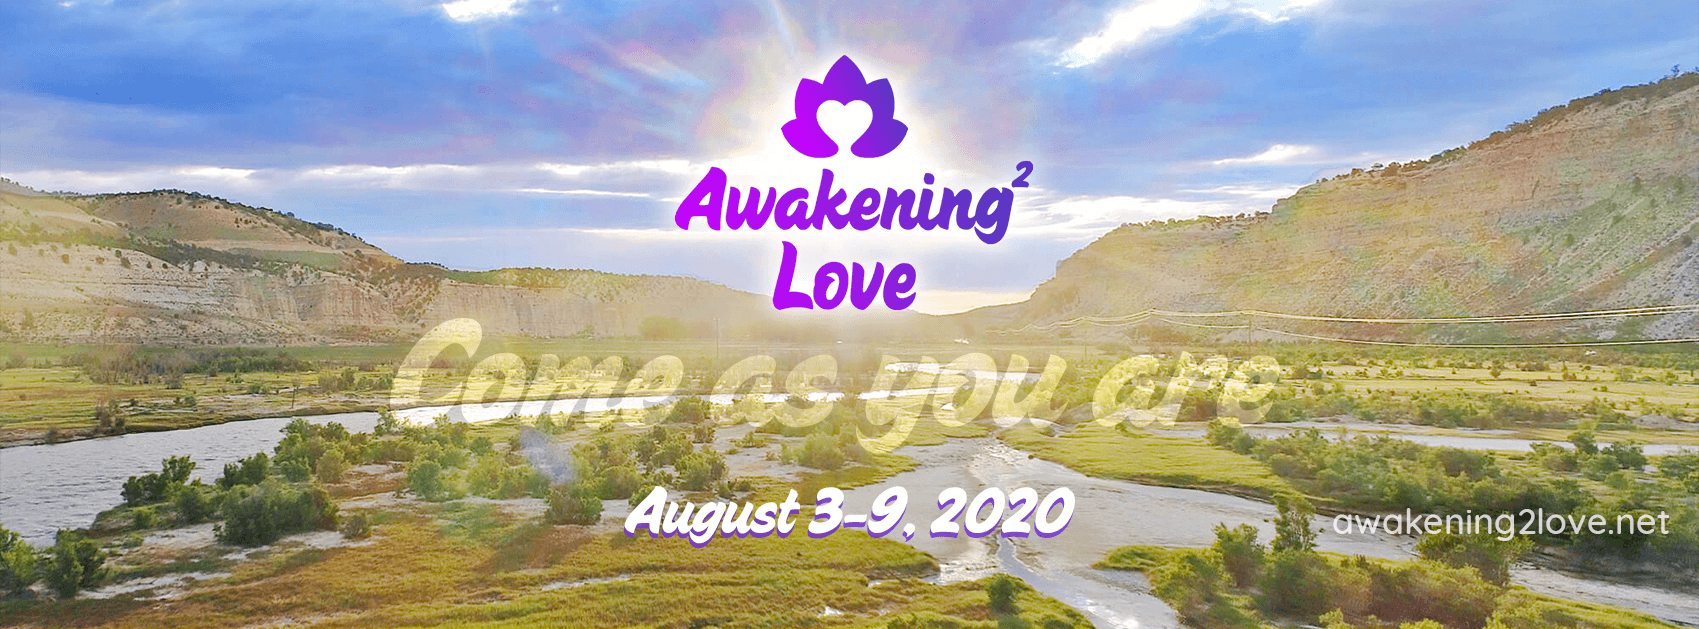 Awakening 2 Love Enlightenment Retreat 2020